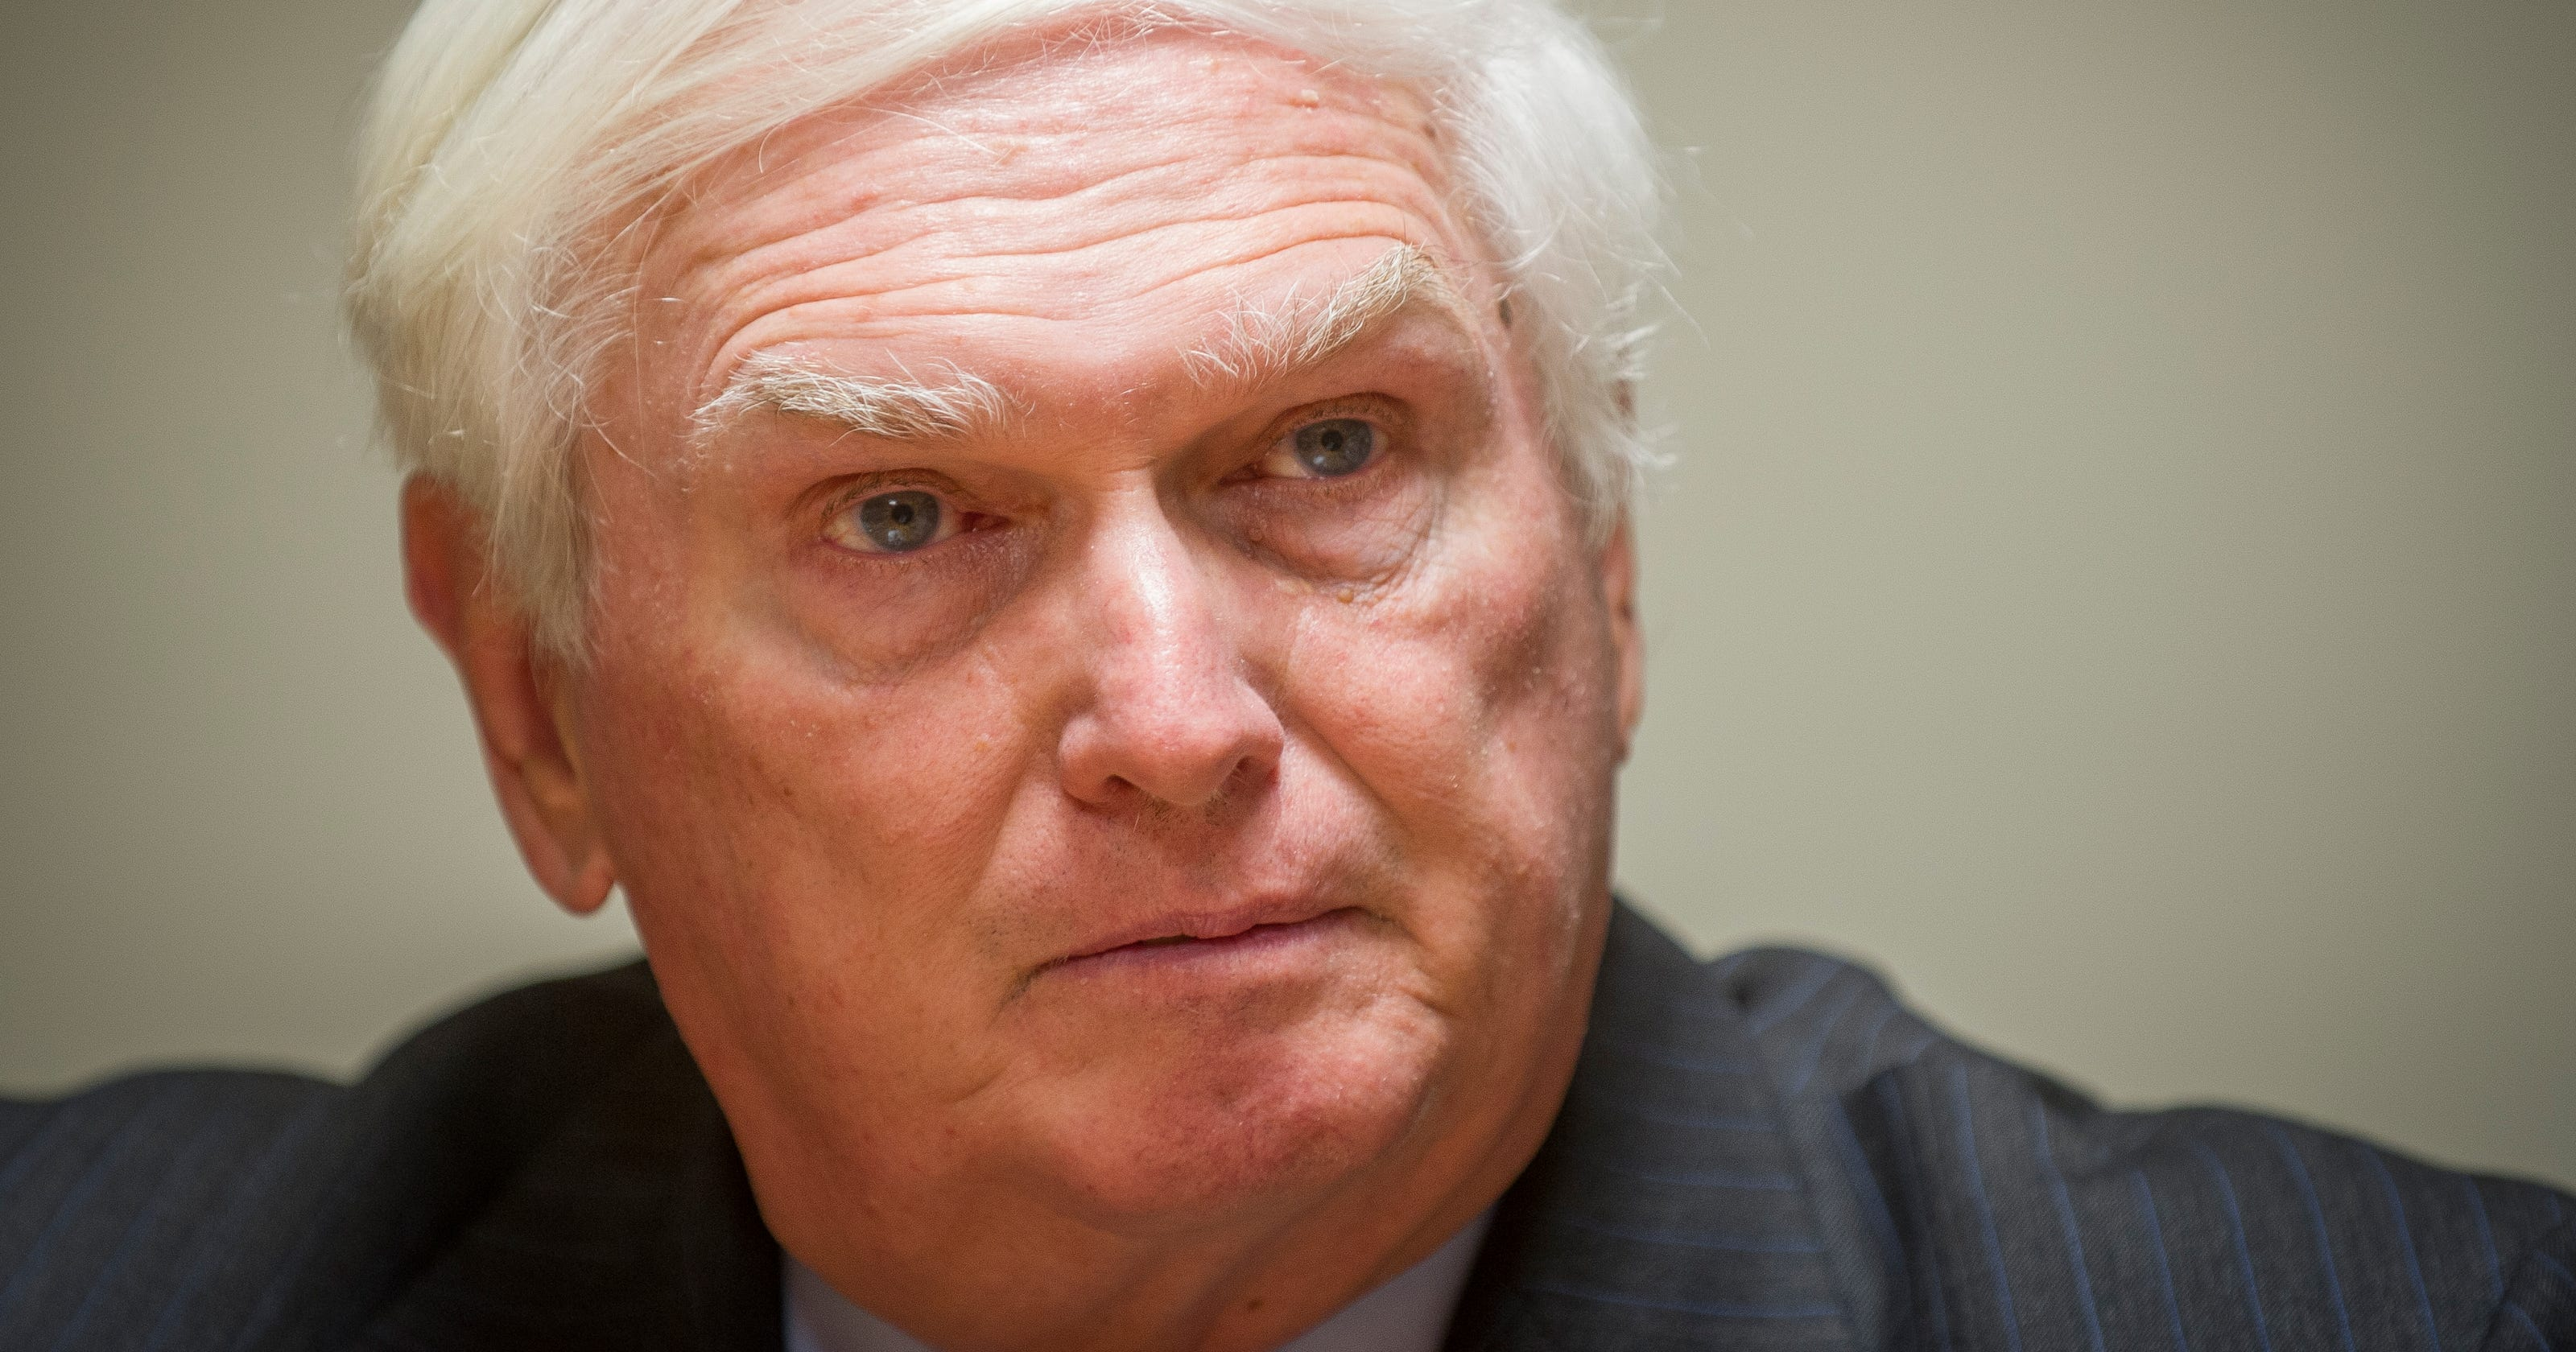 Lawsuit against U S  Rep  Duncan highlights controversial